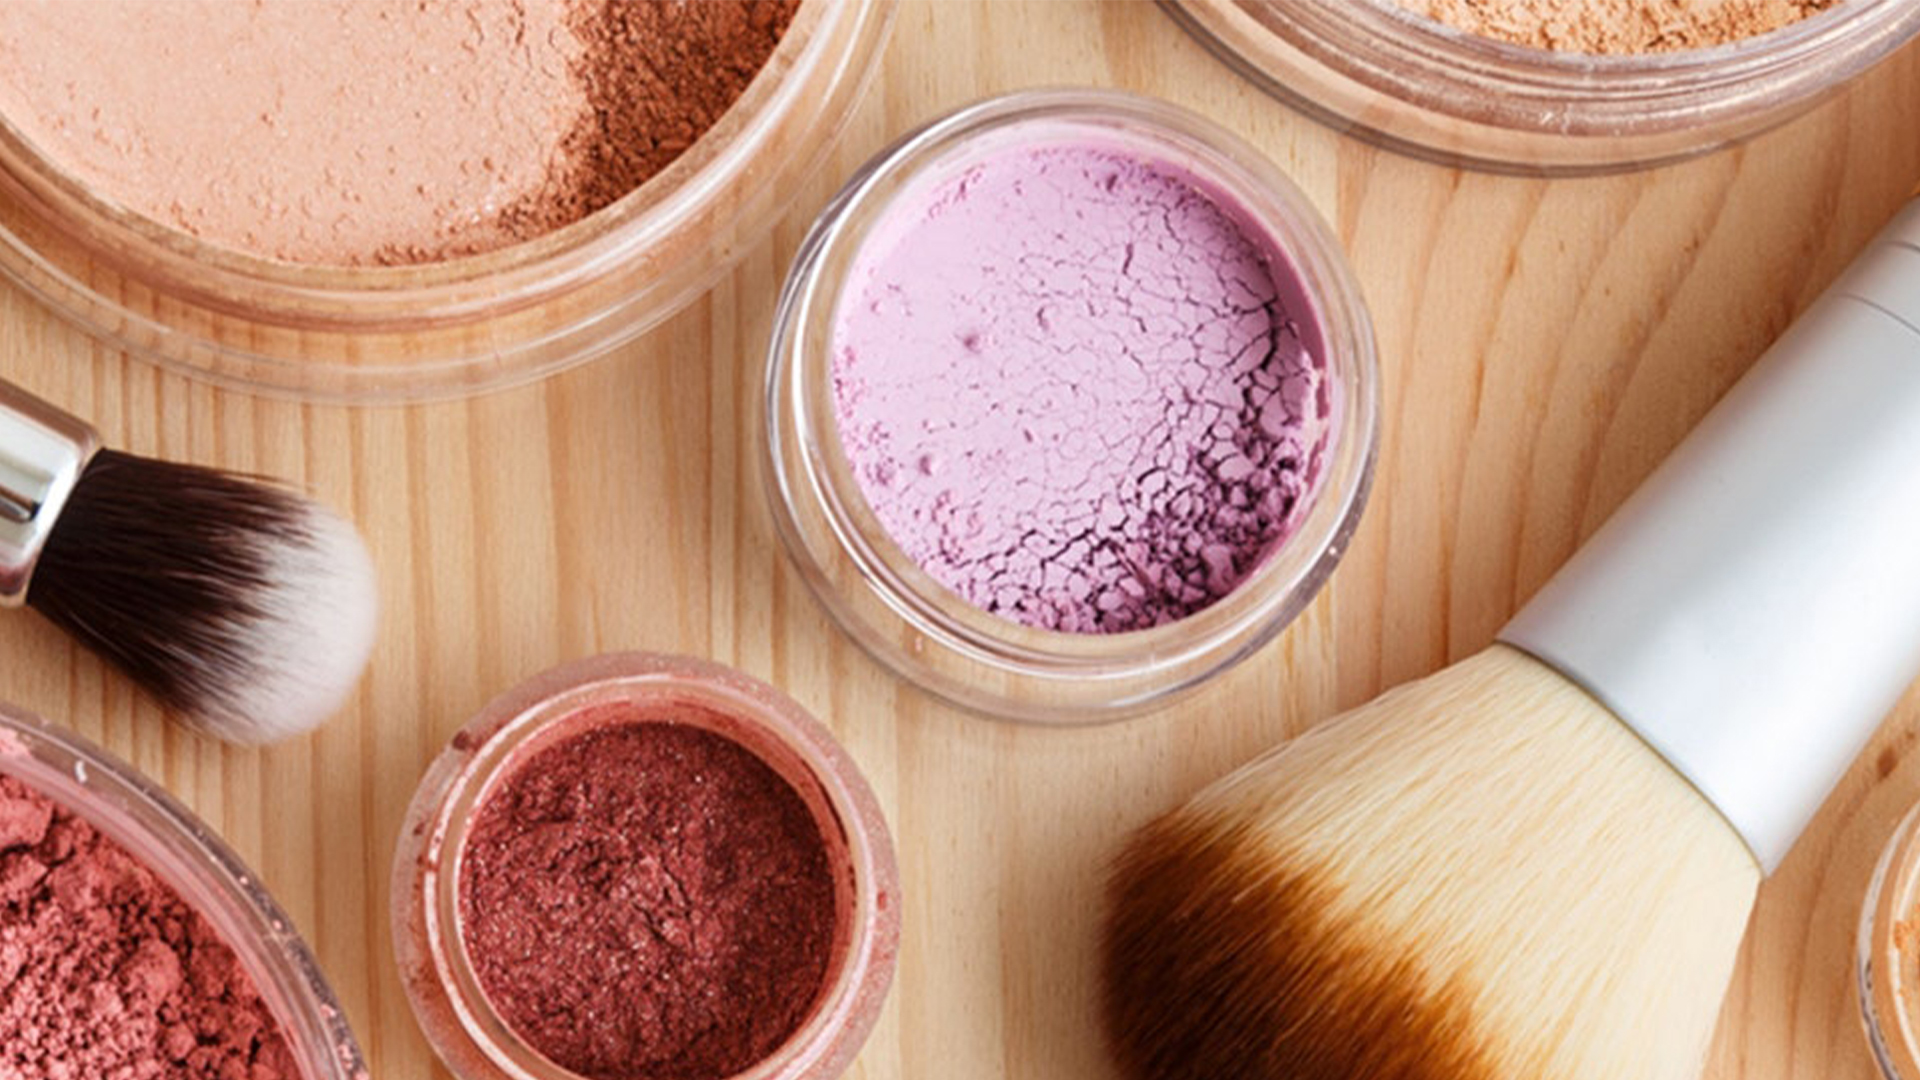 safety issues selling cosmetics